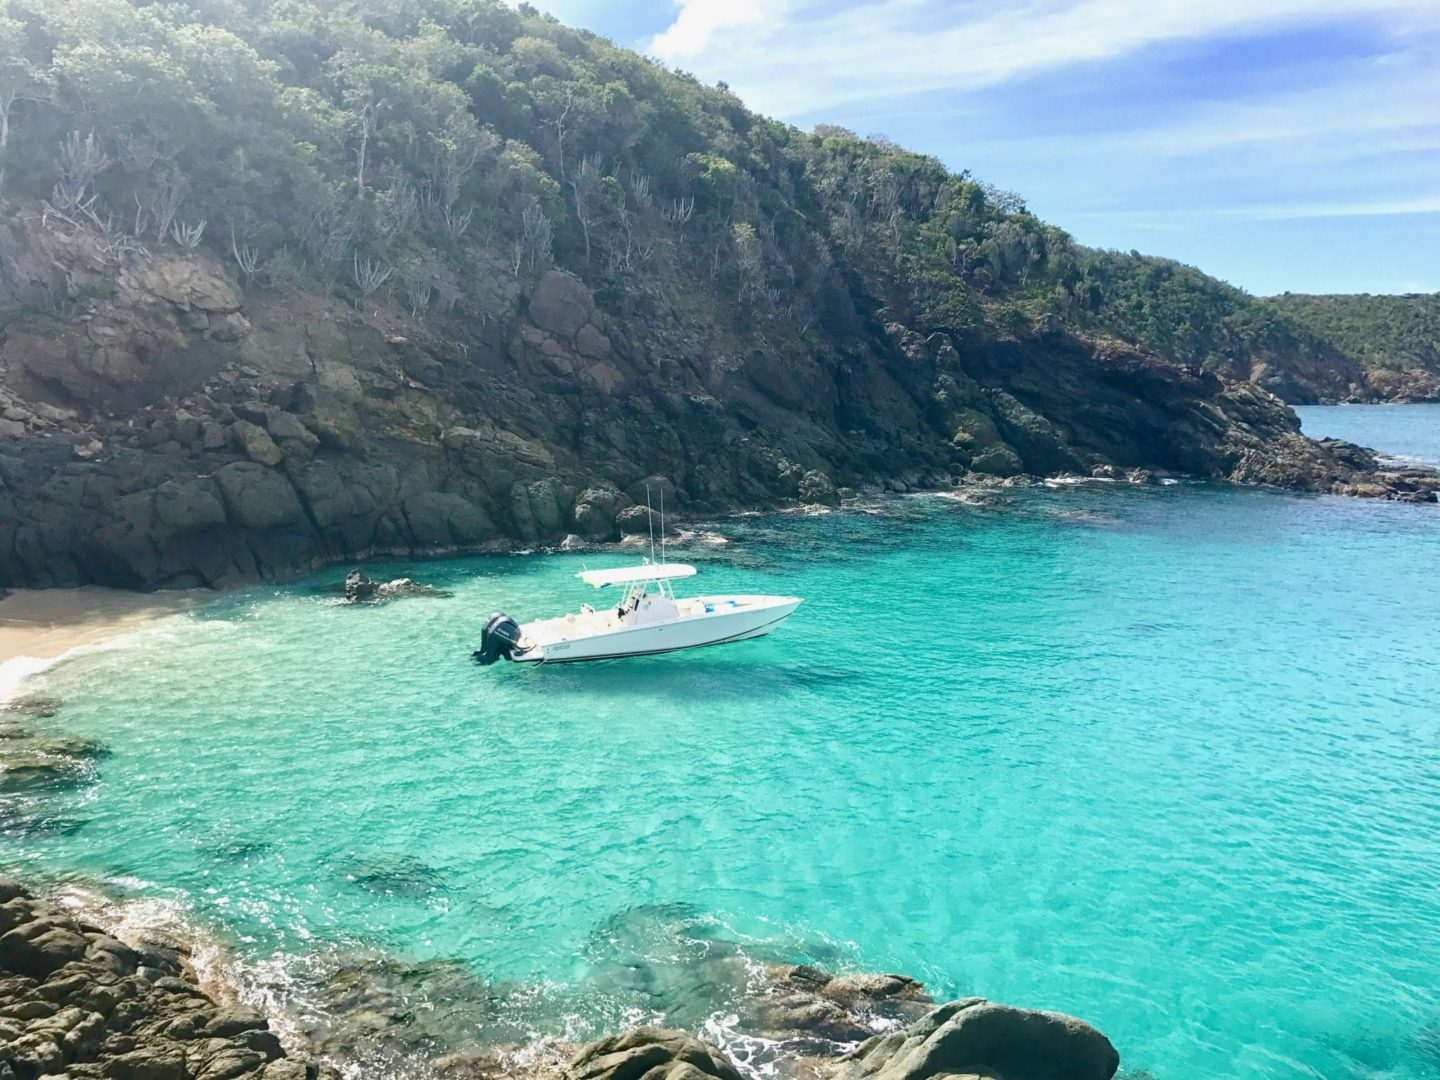 Secluded Island Spots Accessible Only by Boat